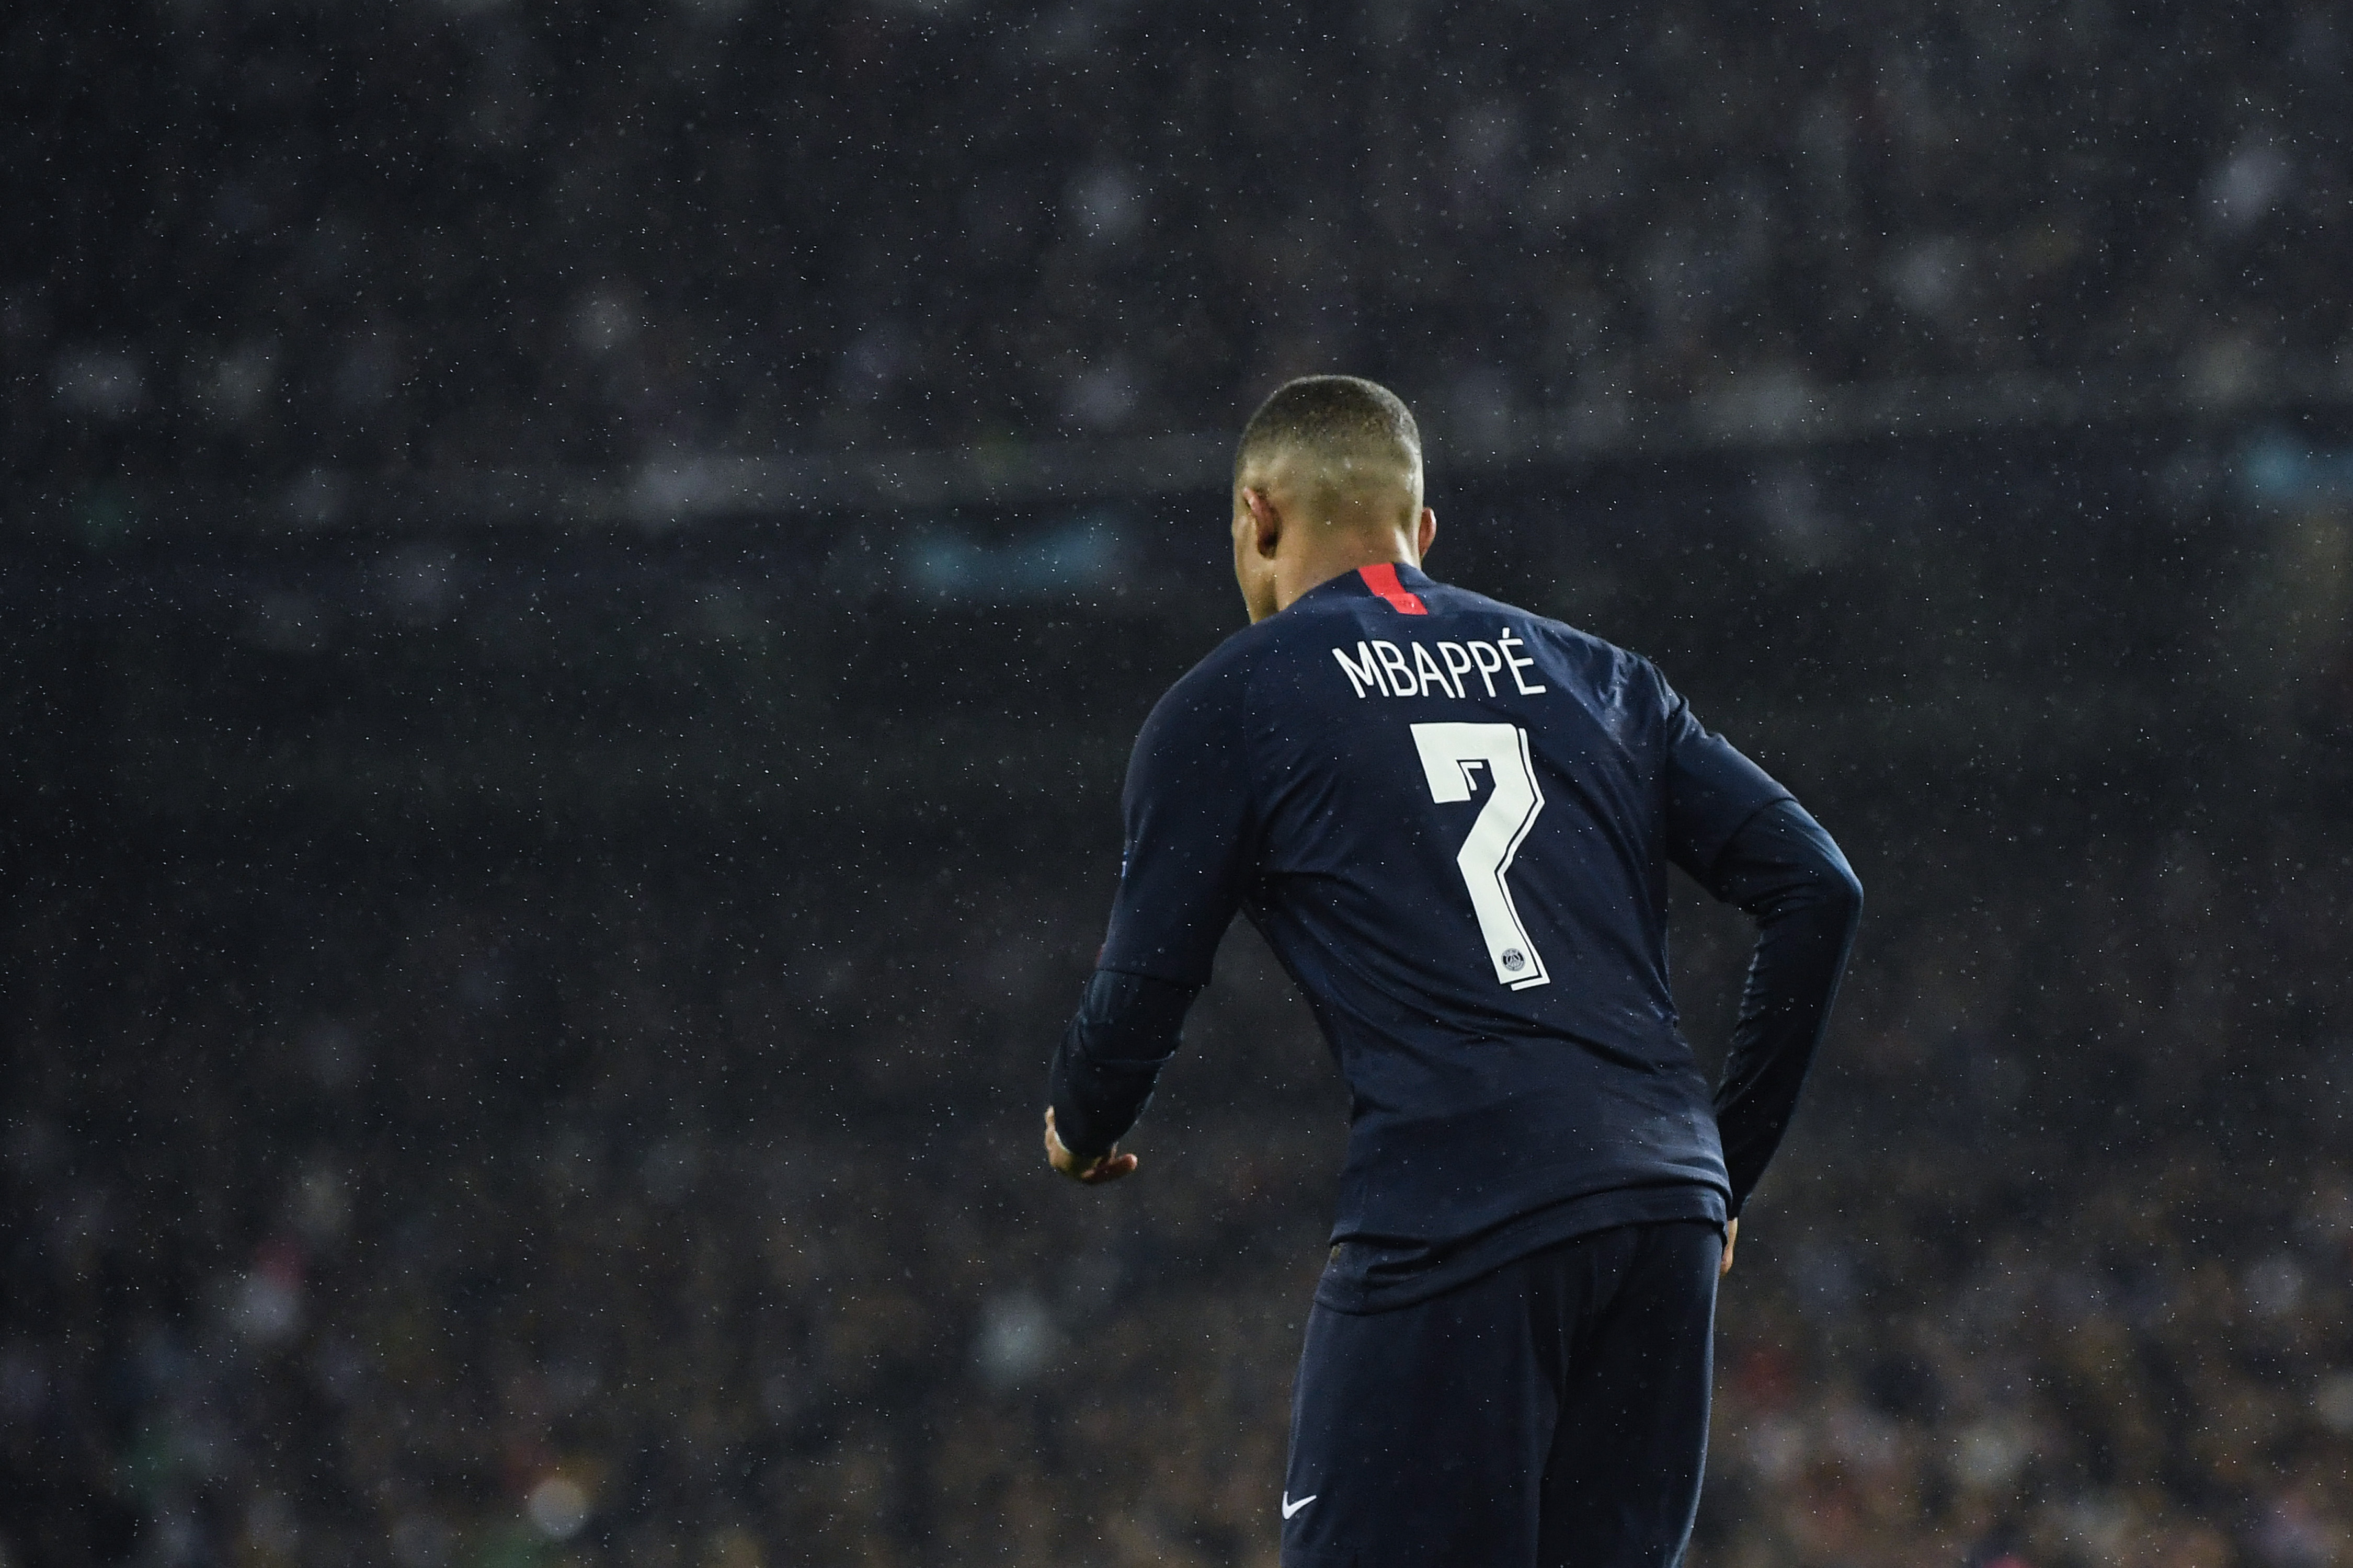 Will Mbappe join Real Madrid anytime soon? (Photo by David Ramos/Getty Images)